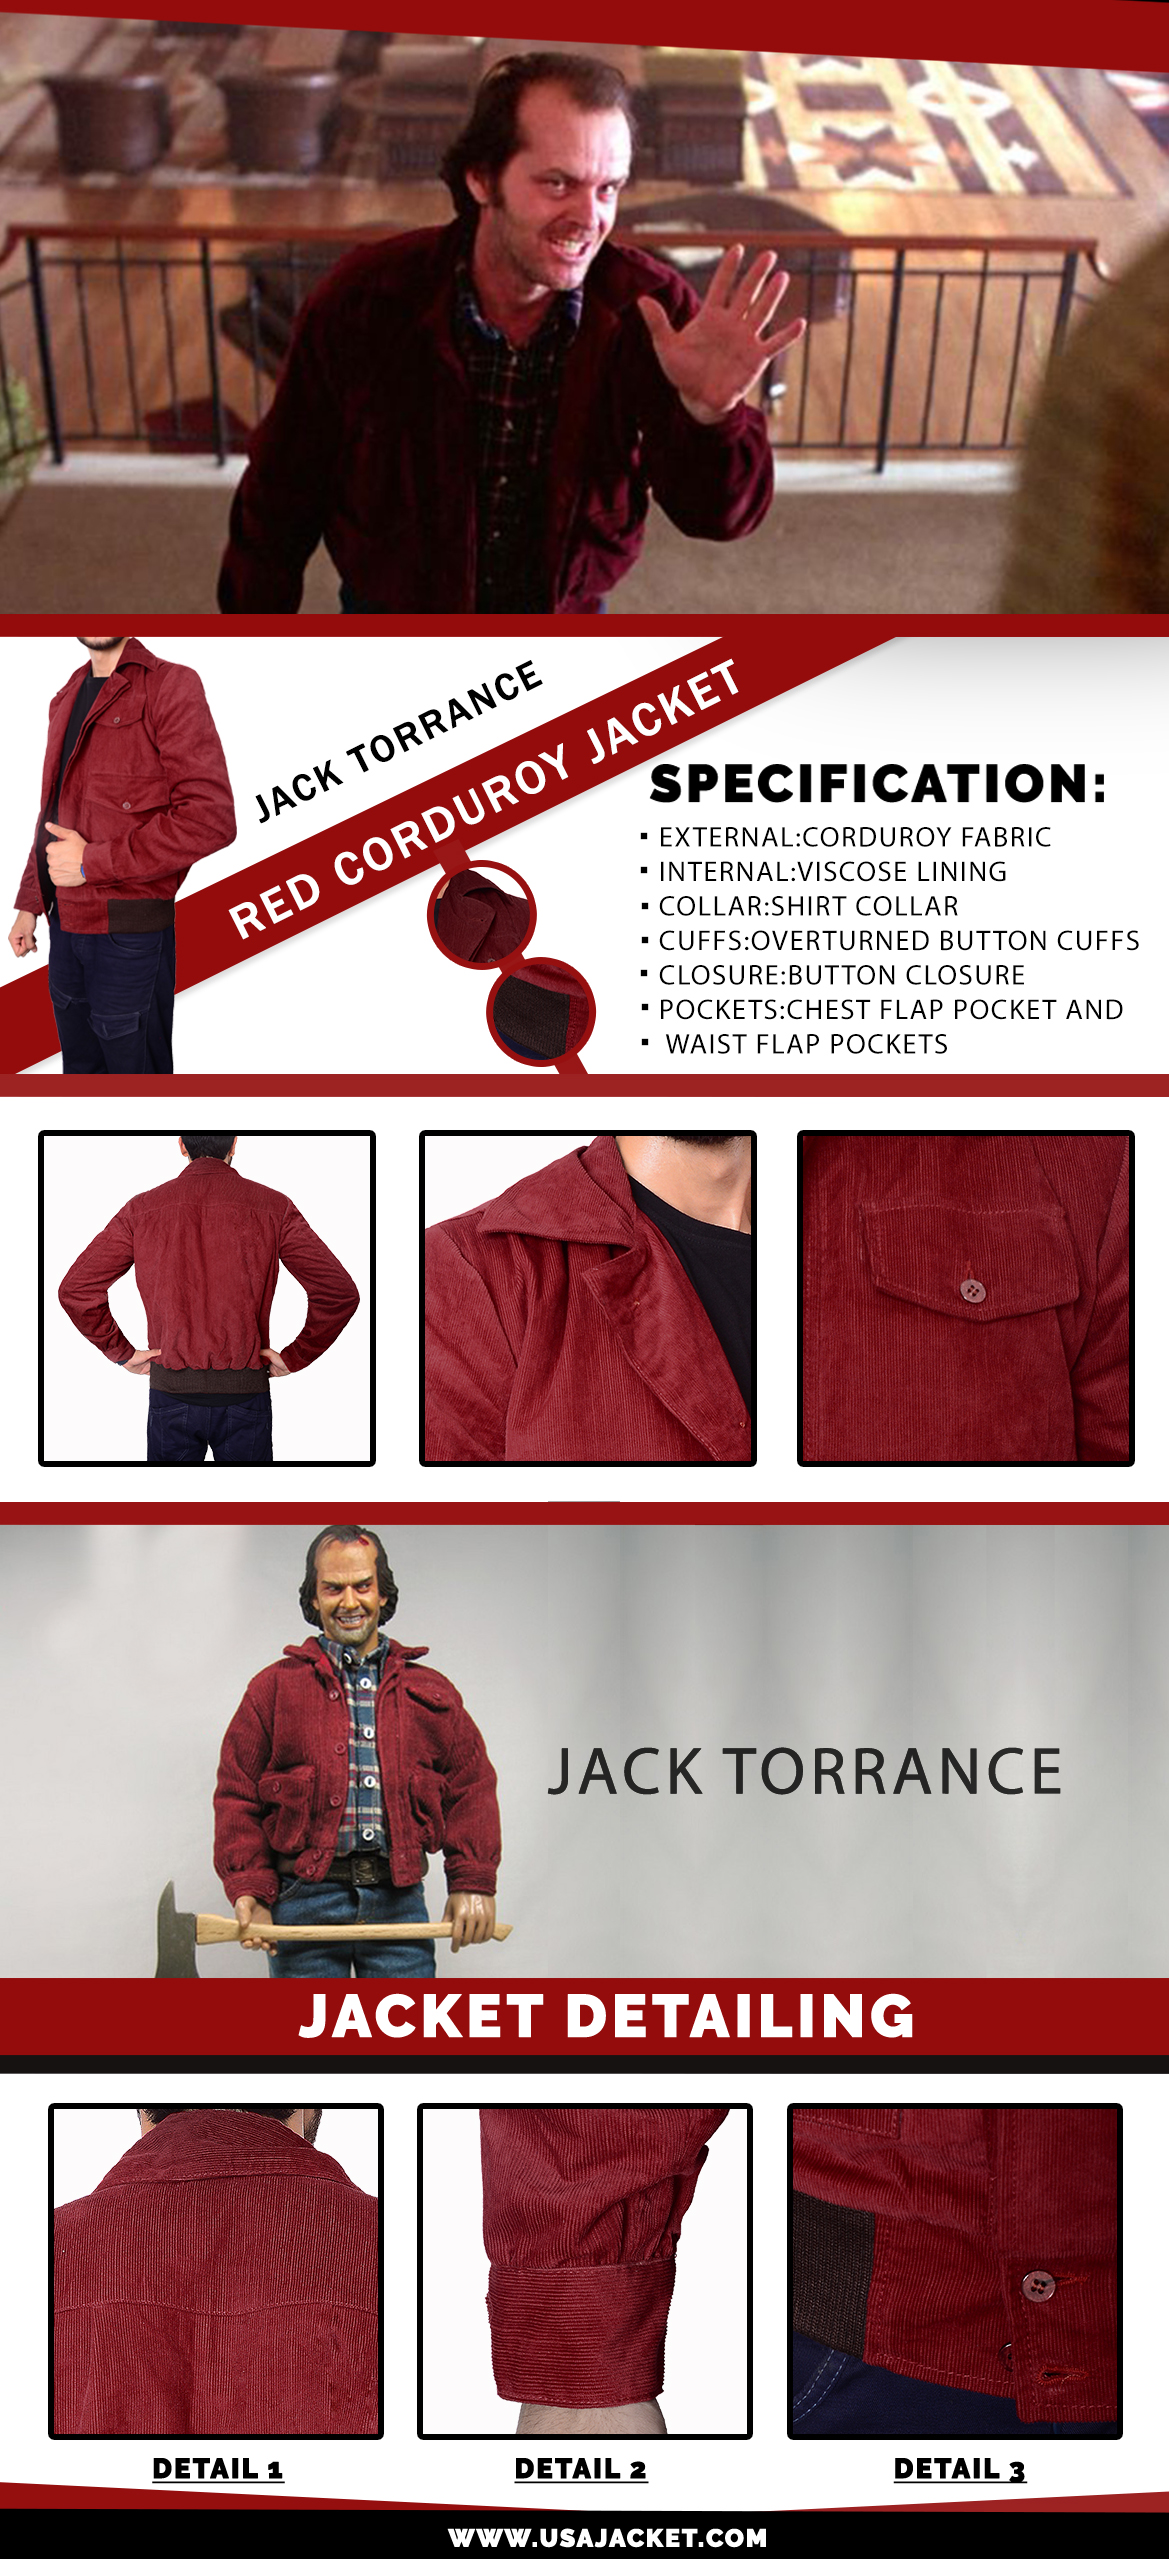 Jack Torrance Red Corduroy infographic